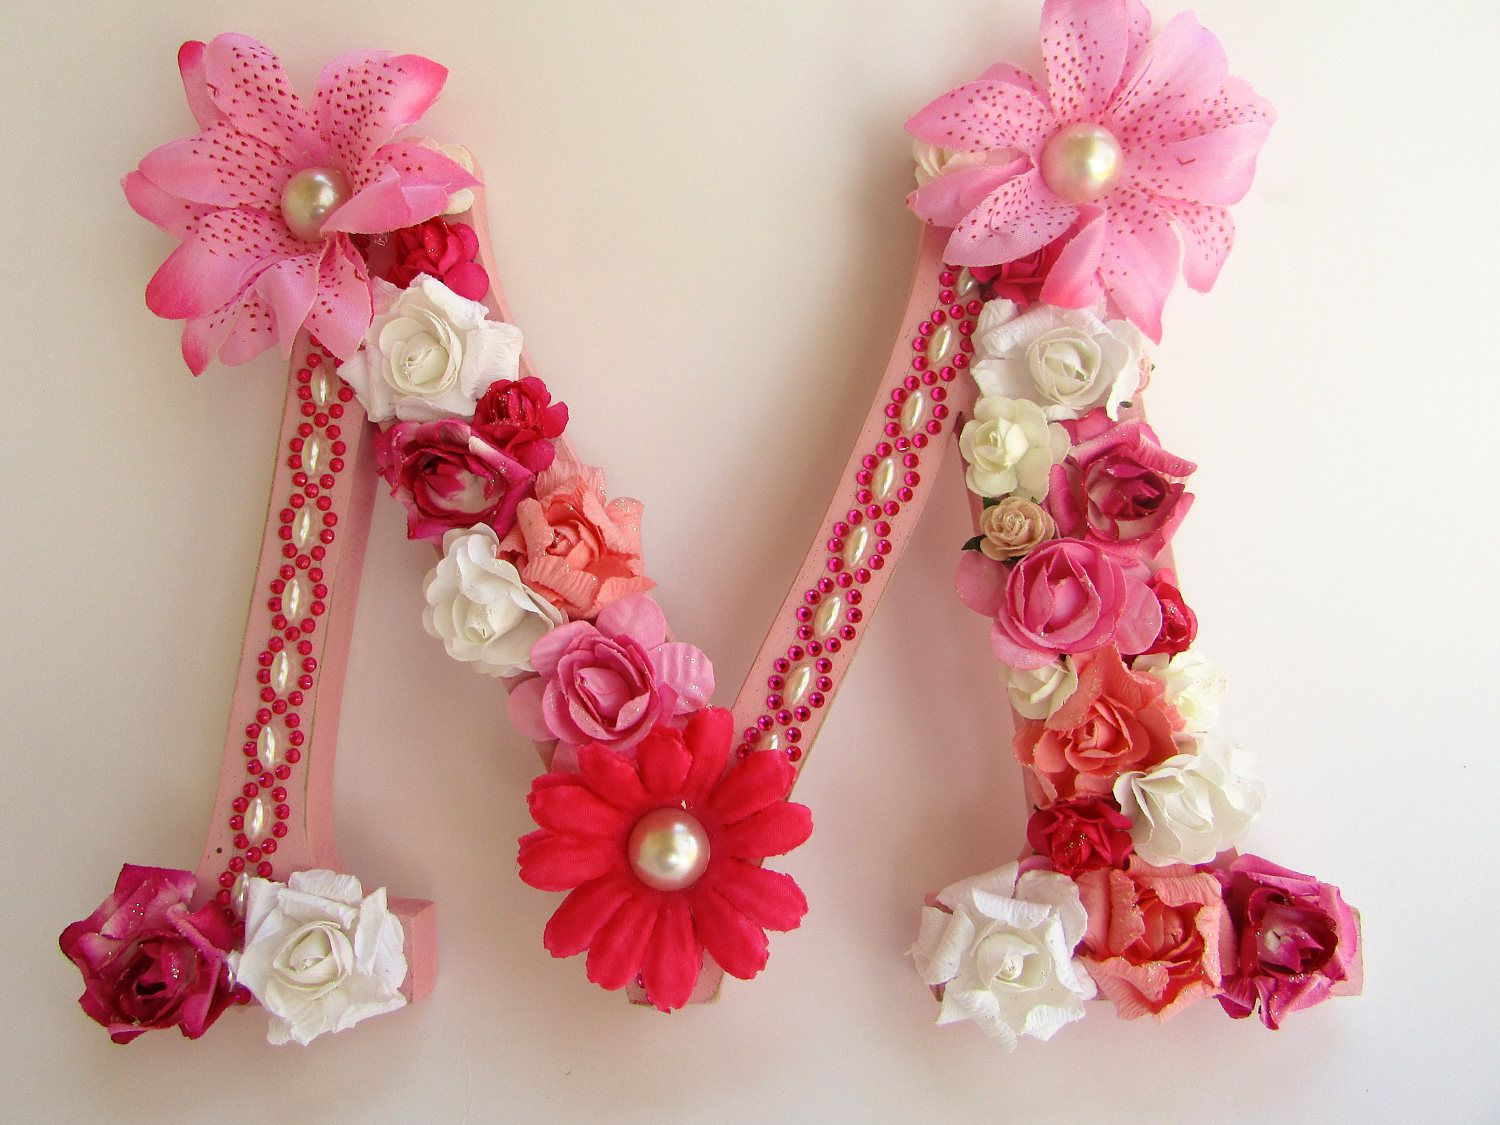 Custom name letter - Floral name letter - Pink flower letter - Pink letter M - Photography prop - Wedding decor - Wood letter M - Decor by PreciousGiftsbyDiane on Etsy